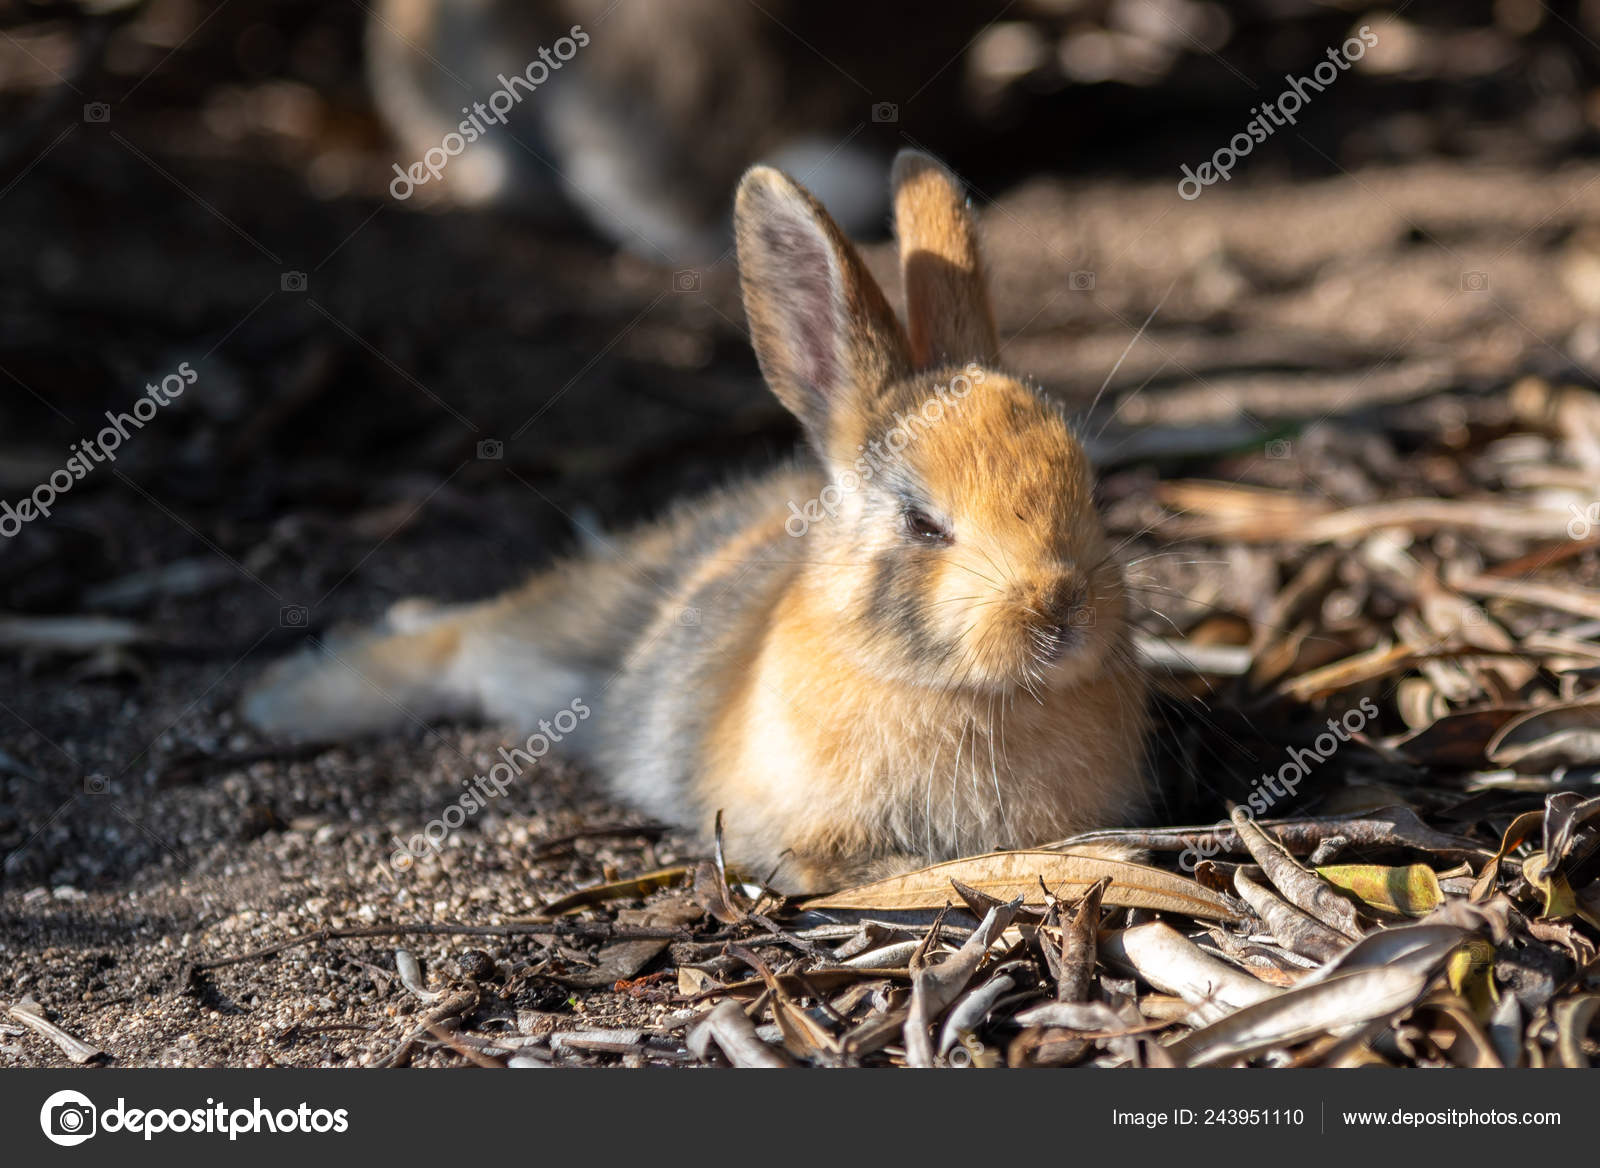 Cute Wild Rabbits Okunoshima Island Sunny Weaher Known Rabbit Island